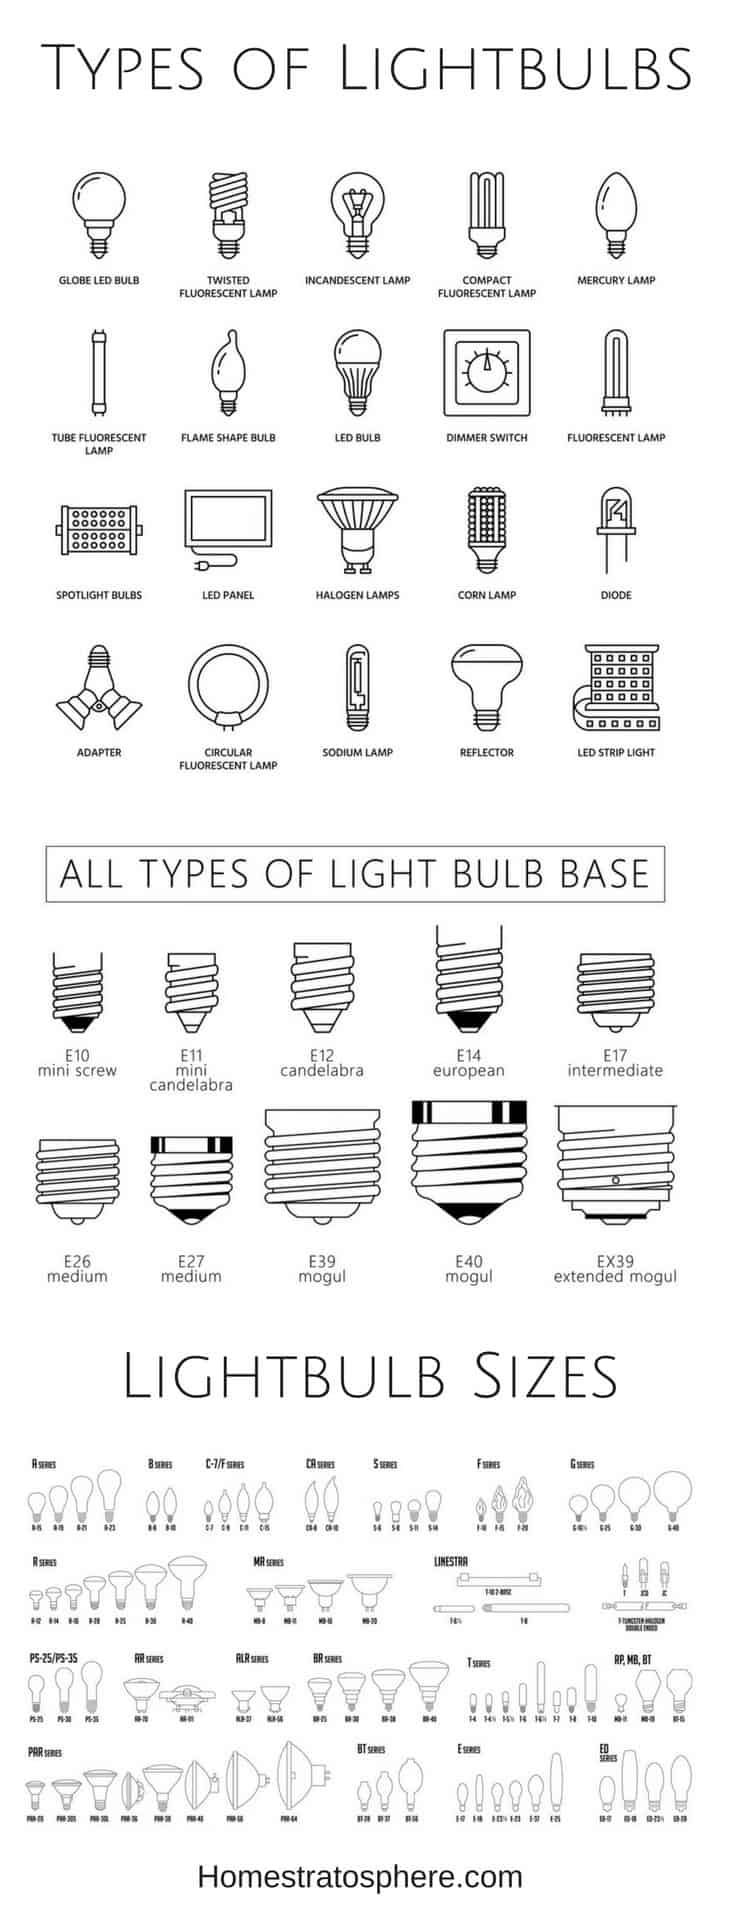 Types of lightbulbs diagram with shapes, sizes and bases